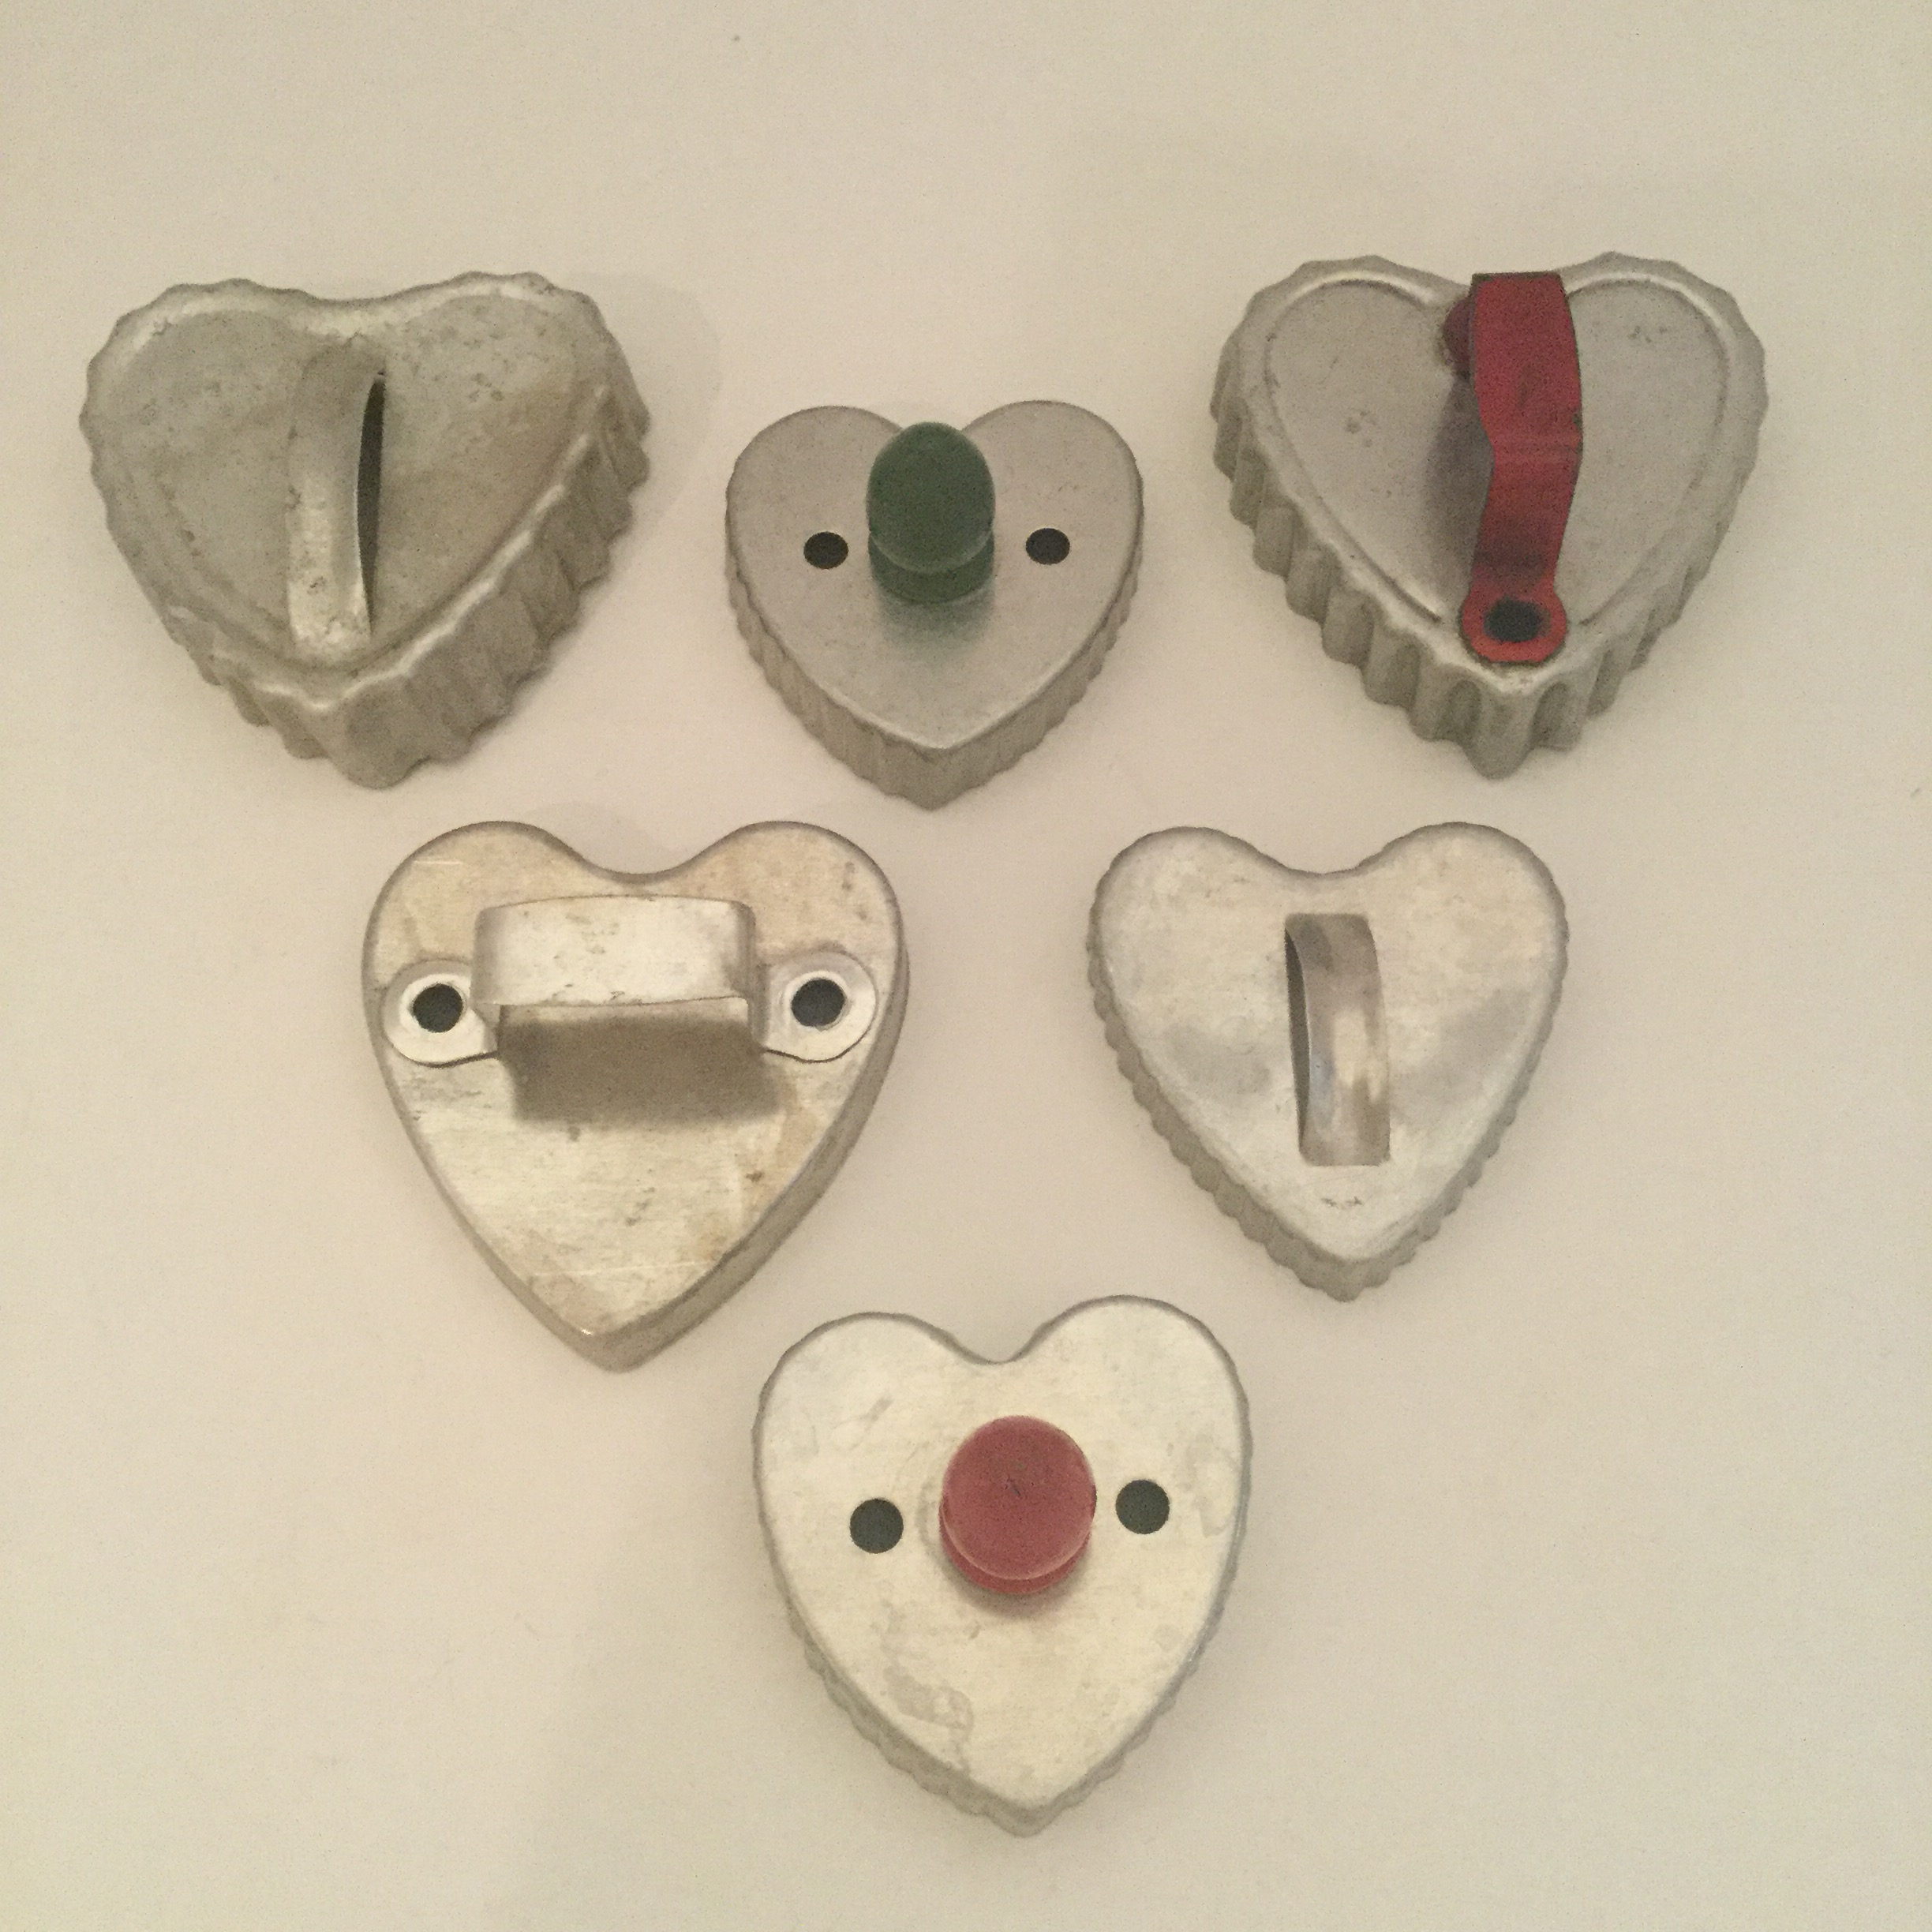 My heart cookie cutters ... also collected one at a time (that's the fun part!)